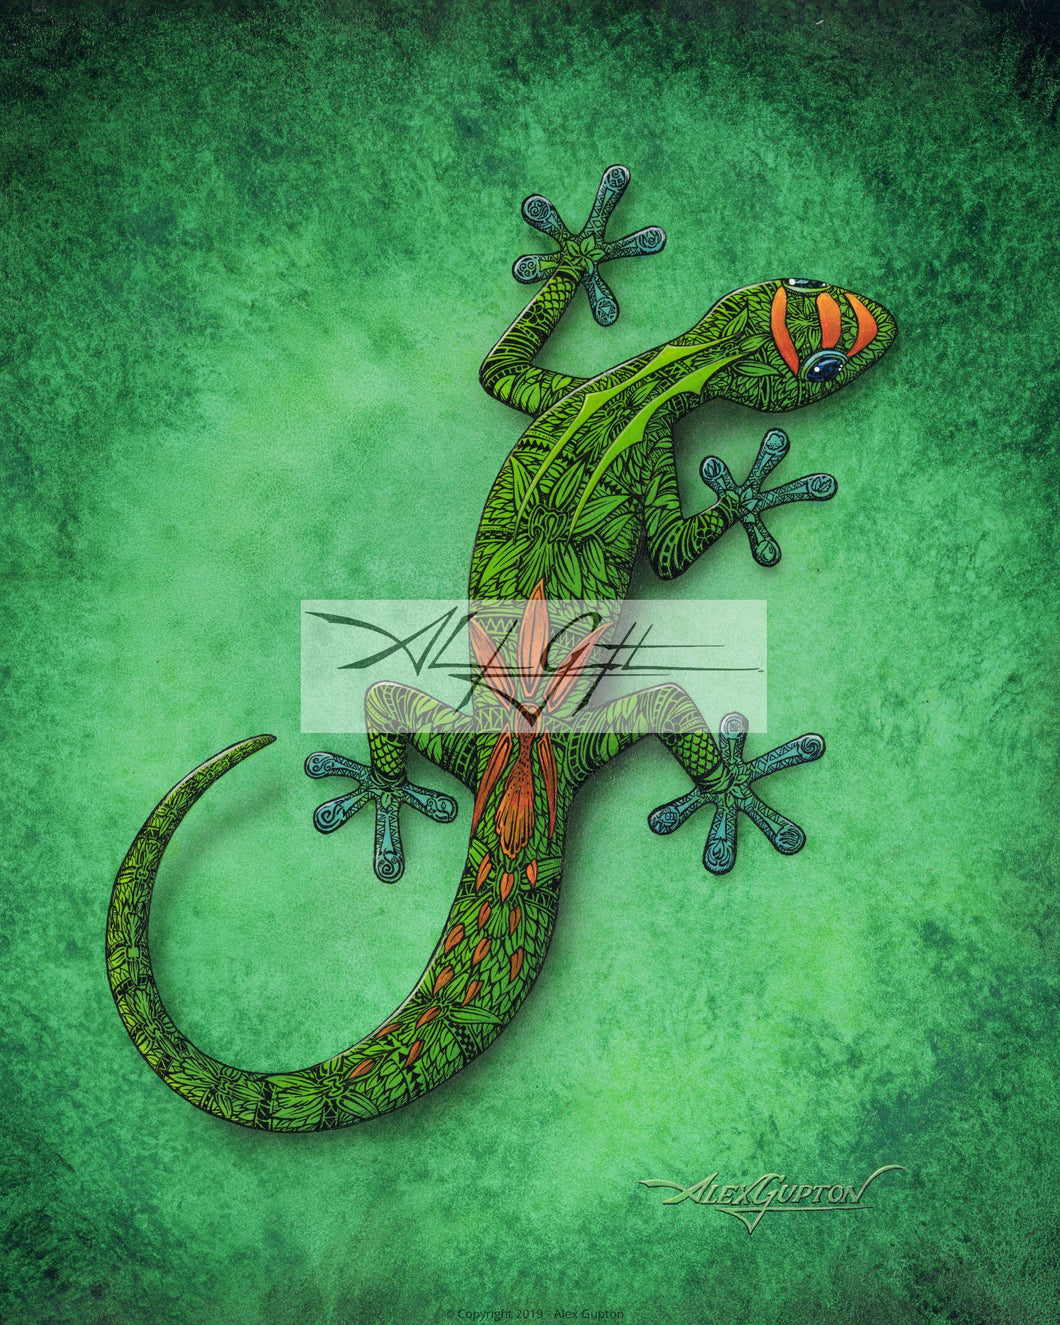 New Gecko Mini Canvas Giclee 8x10